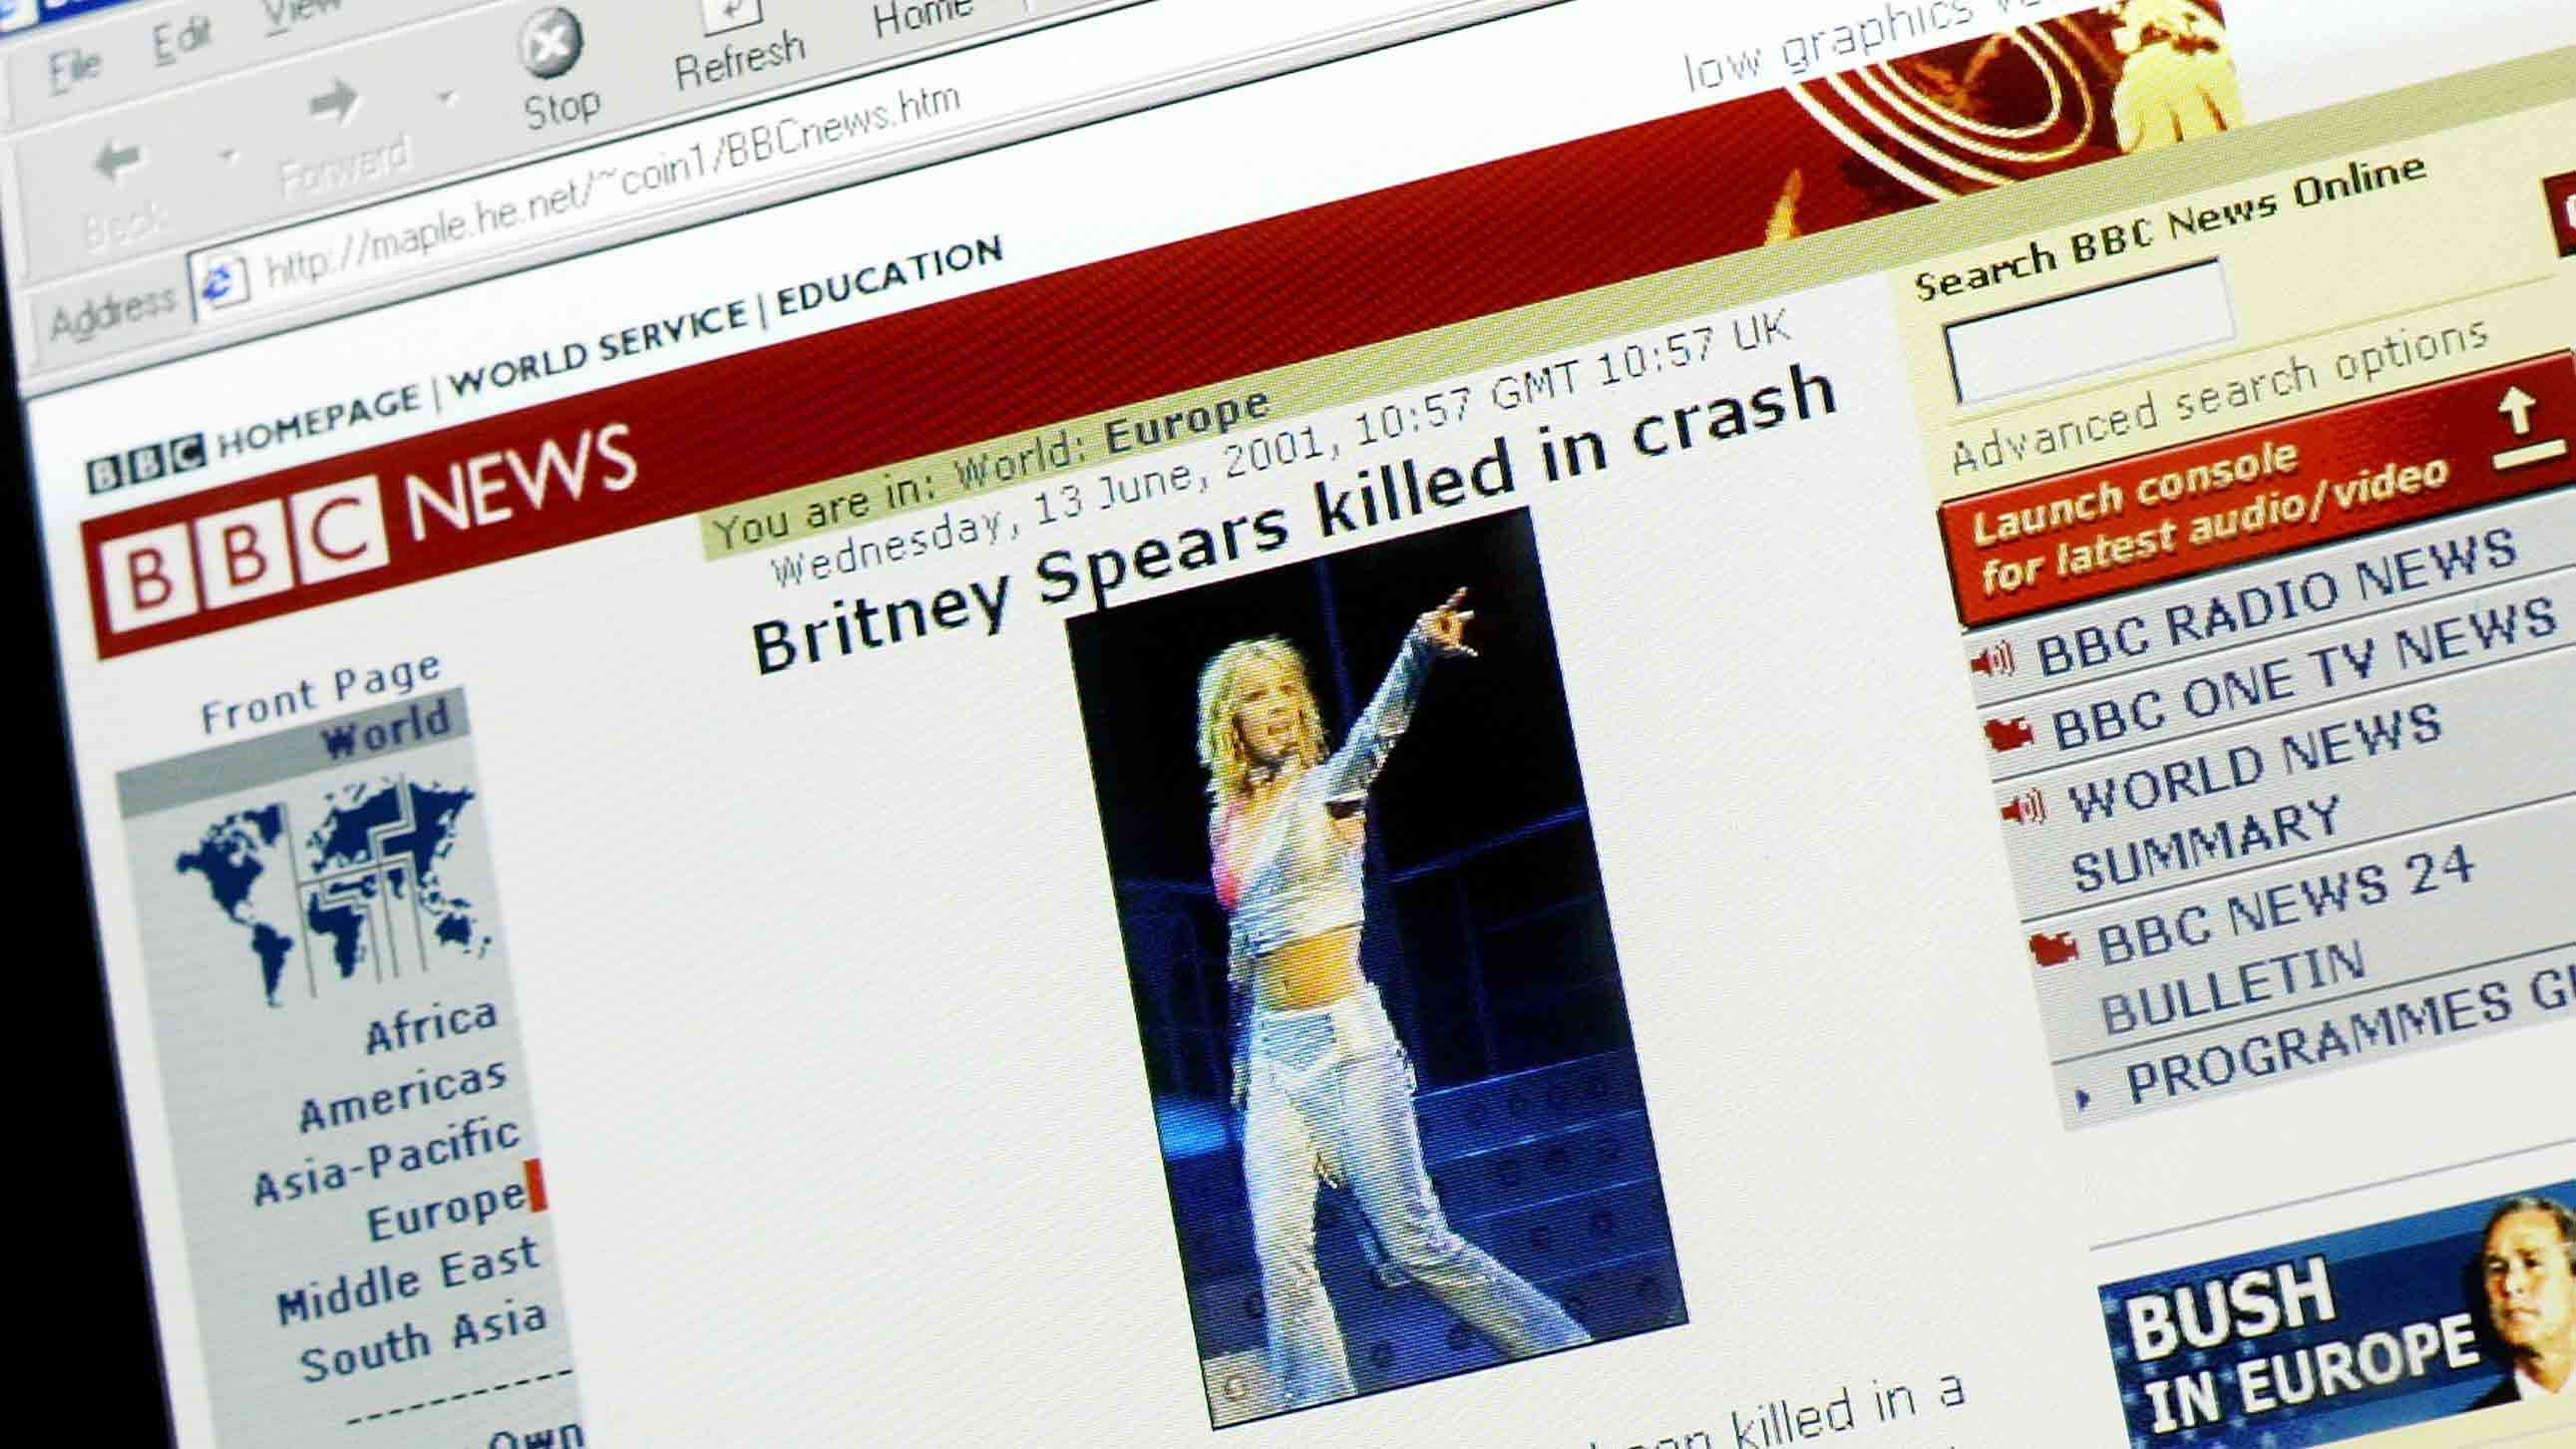 A website falsely reports the death of pop singer Britney Spears June 13, 2001 in London, England.